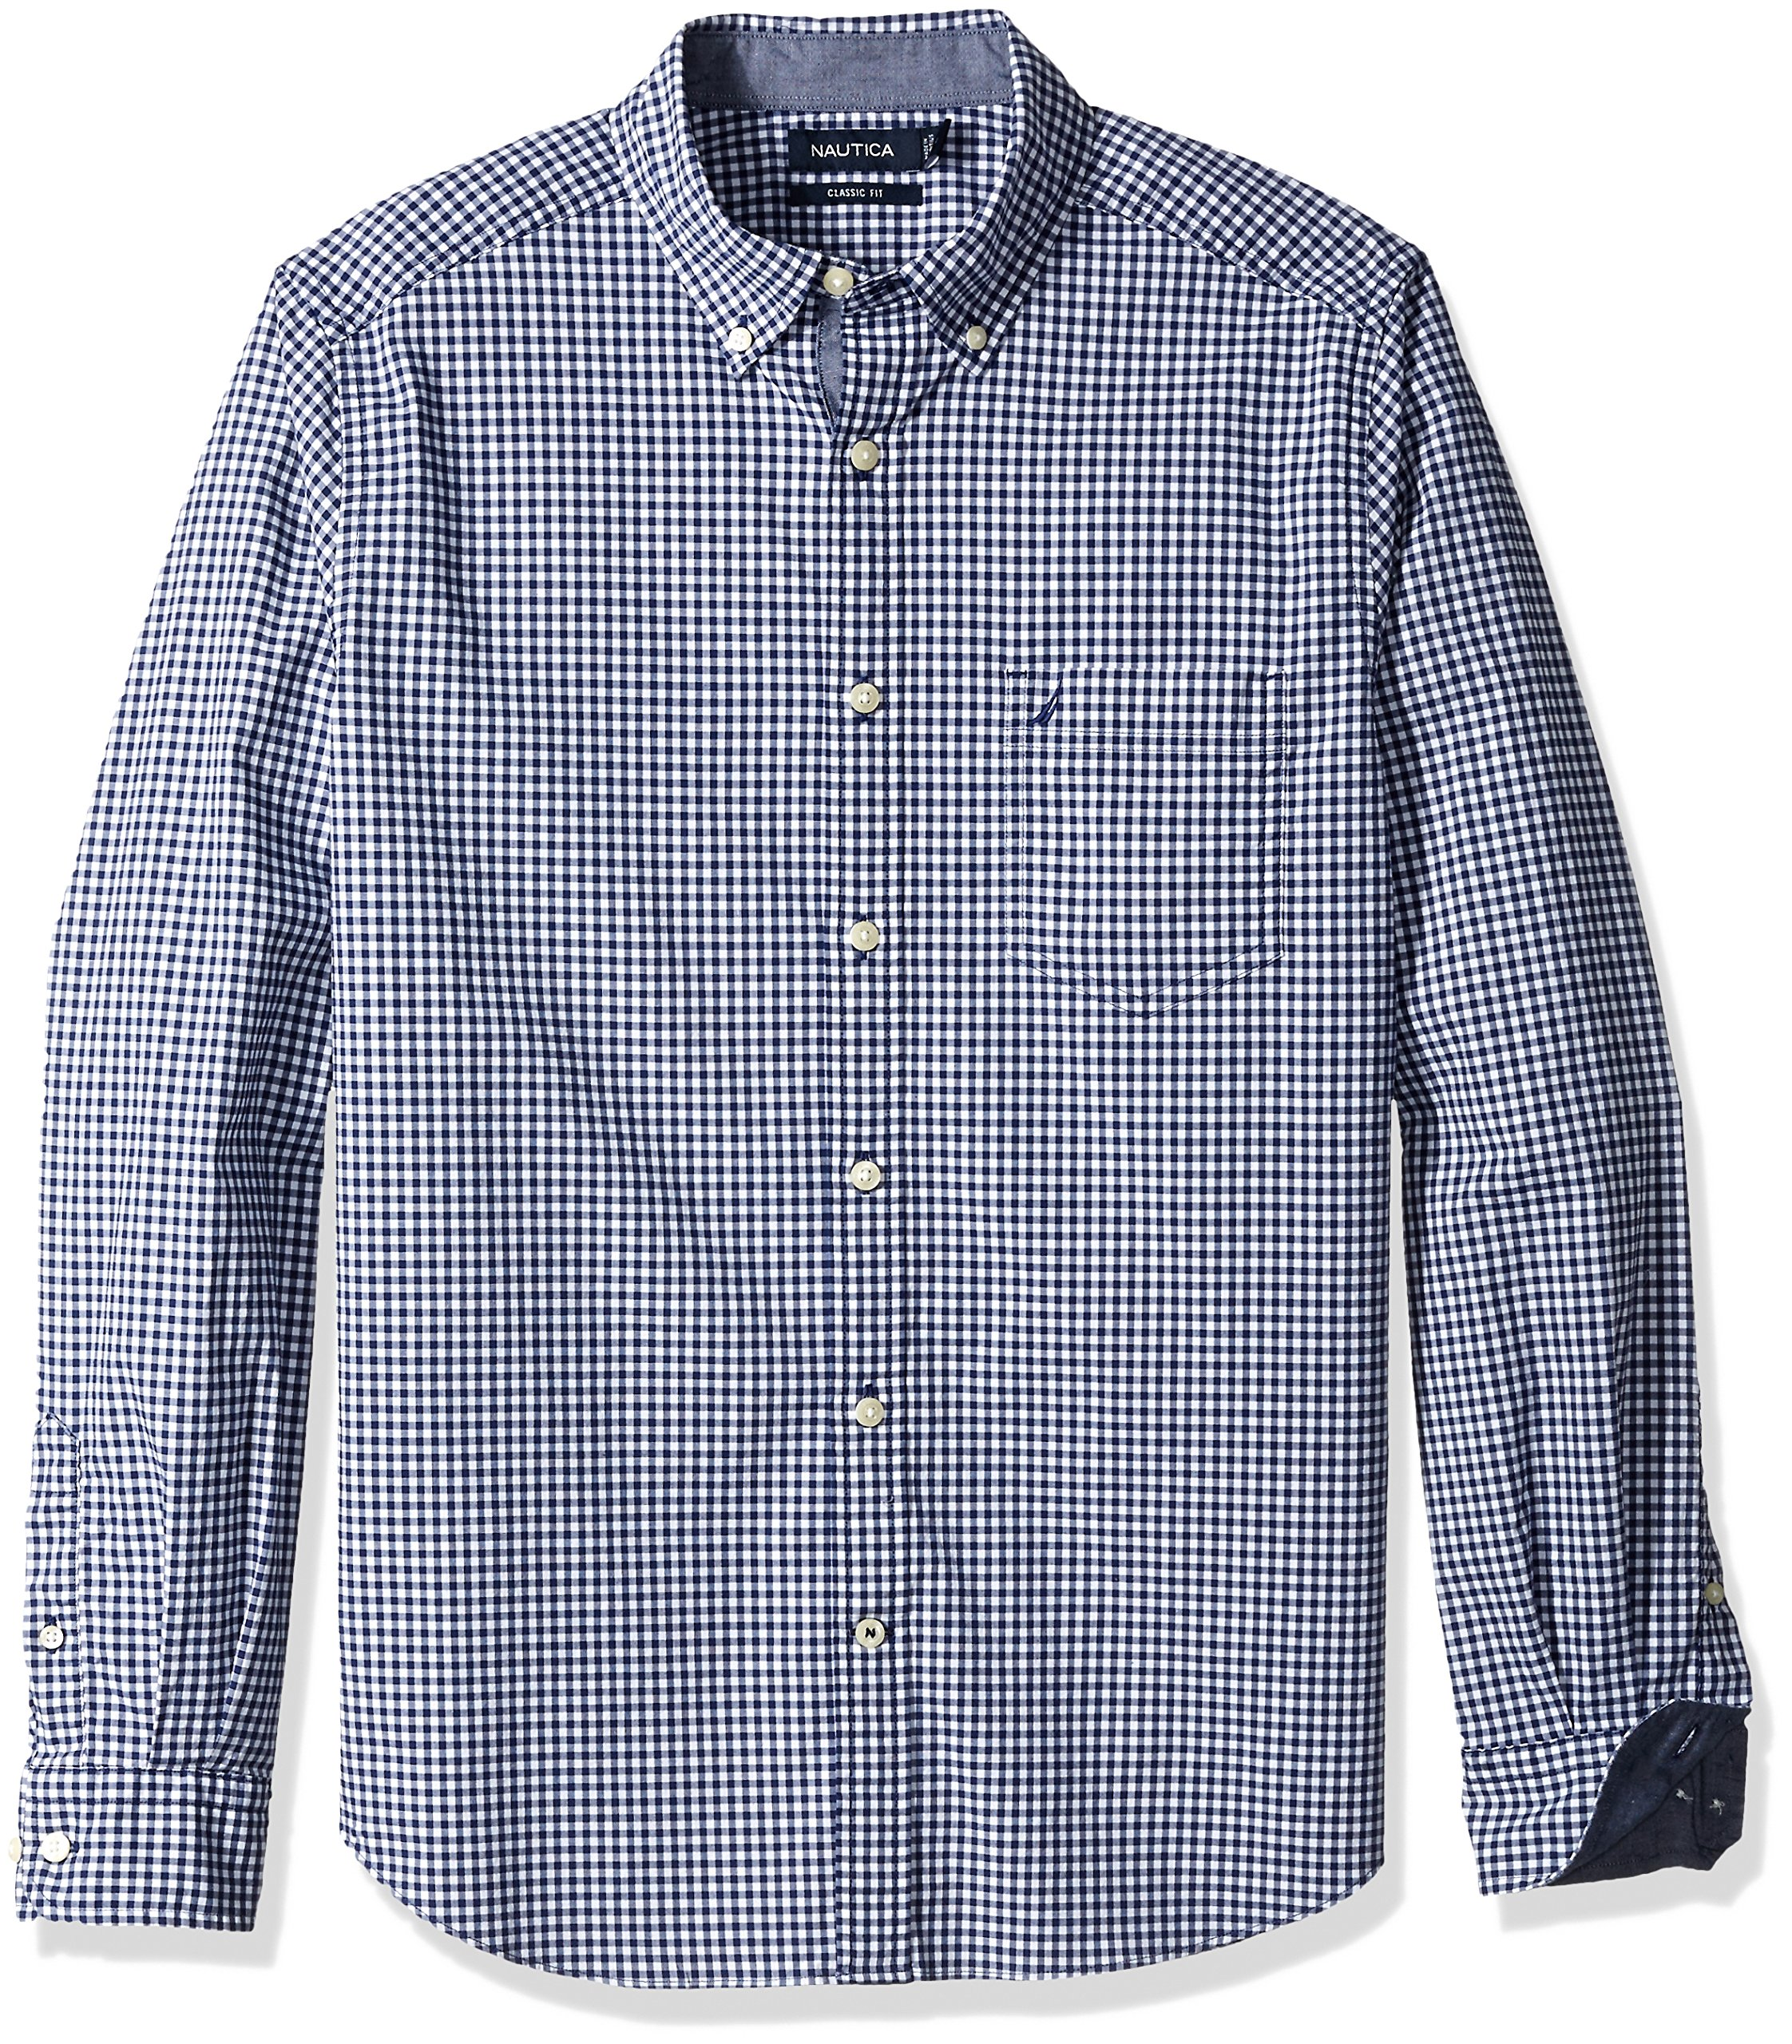 Nautica Men's Classic Fit Stretch Gingham Long Sleeve Button Down Shirt, j Navy, Large